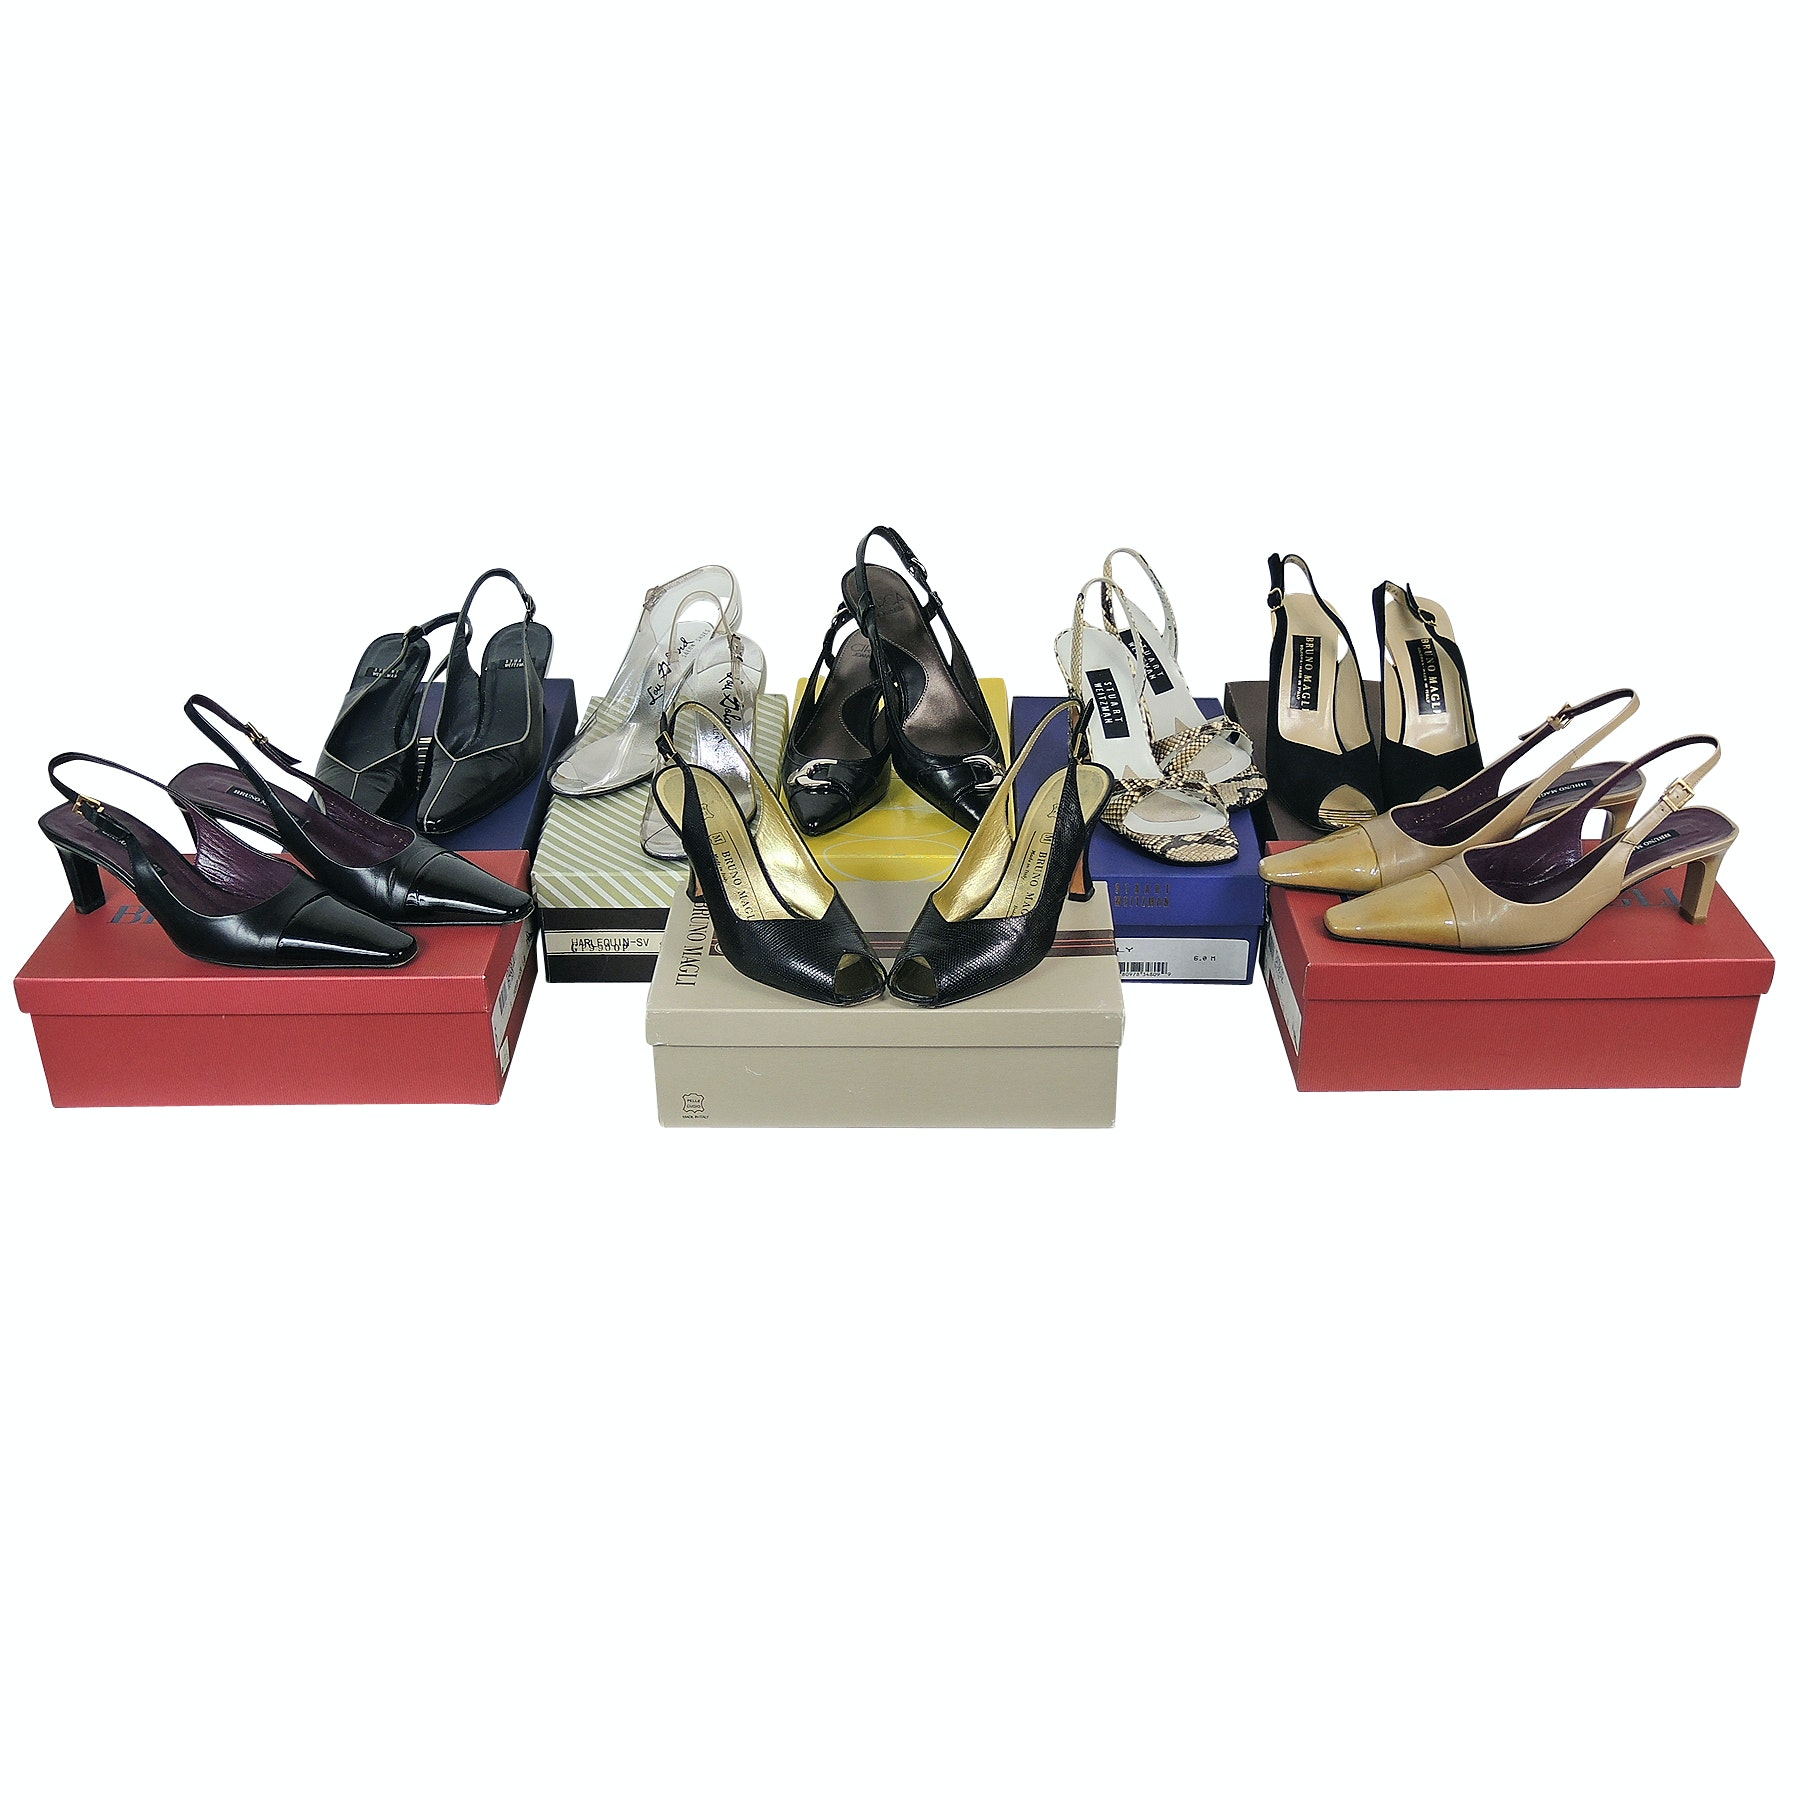 Collection of Slingbacks and Peep-Toes Including Bruno Magli and Stuart Weitzman